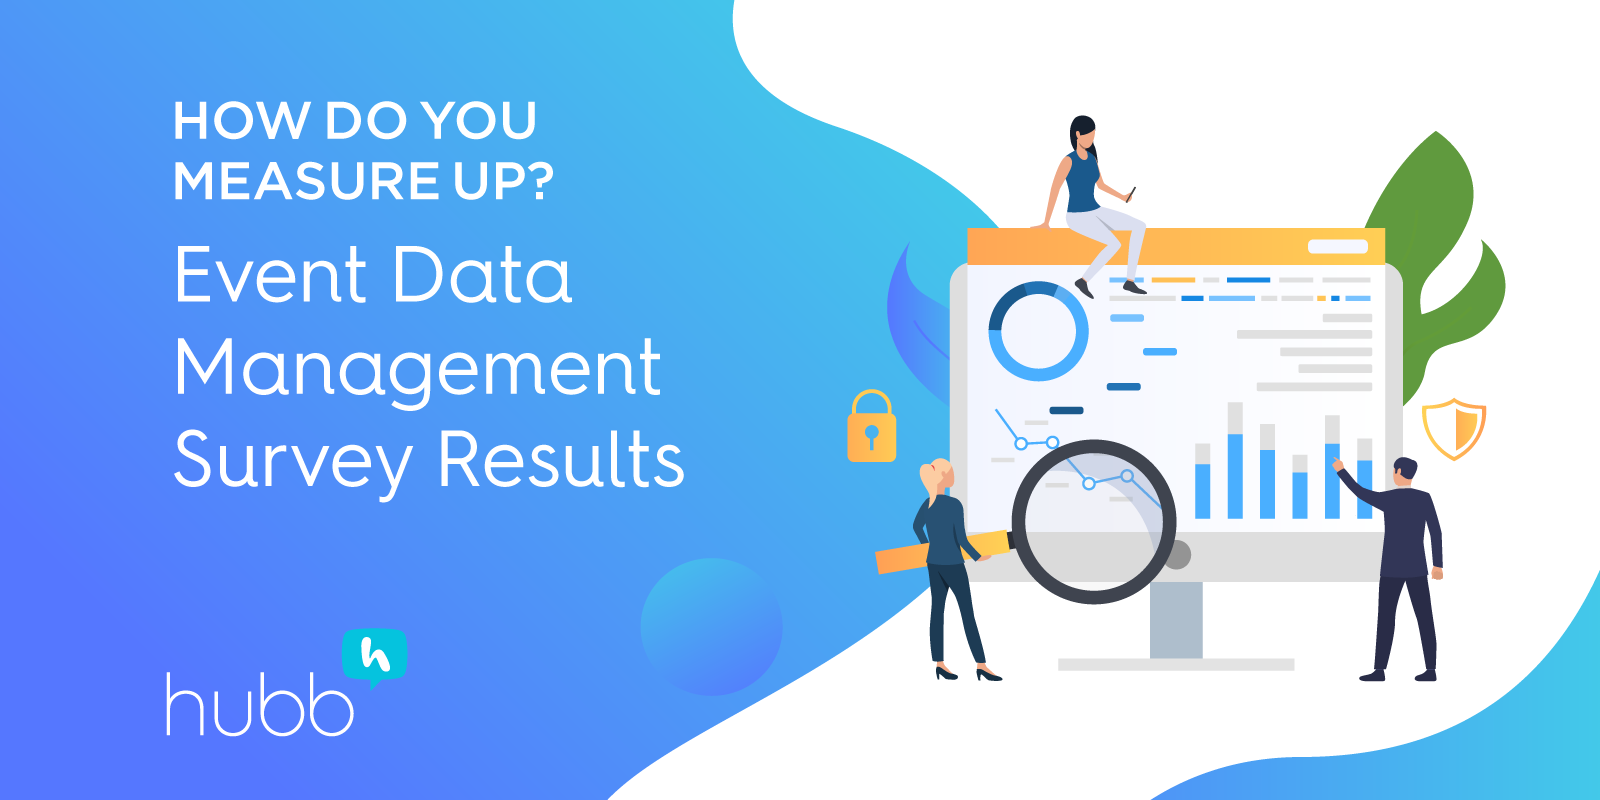 EventProfs: How Do You Measure Up? Event Data Management Survey Results